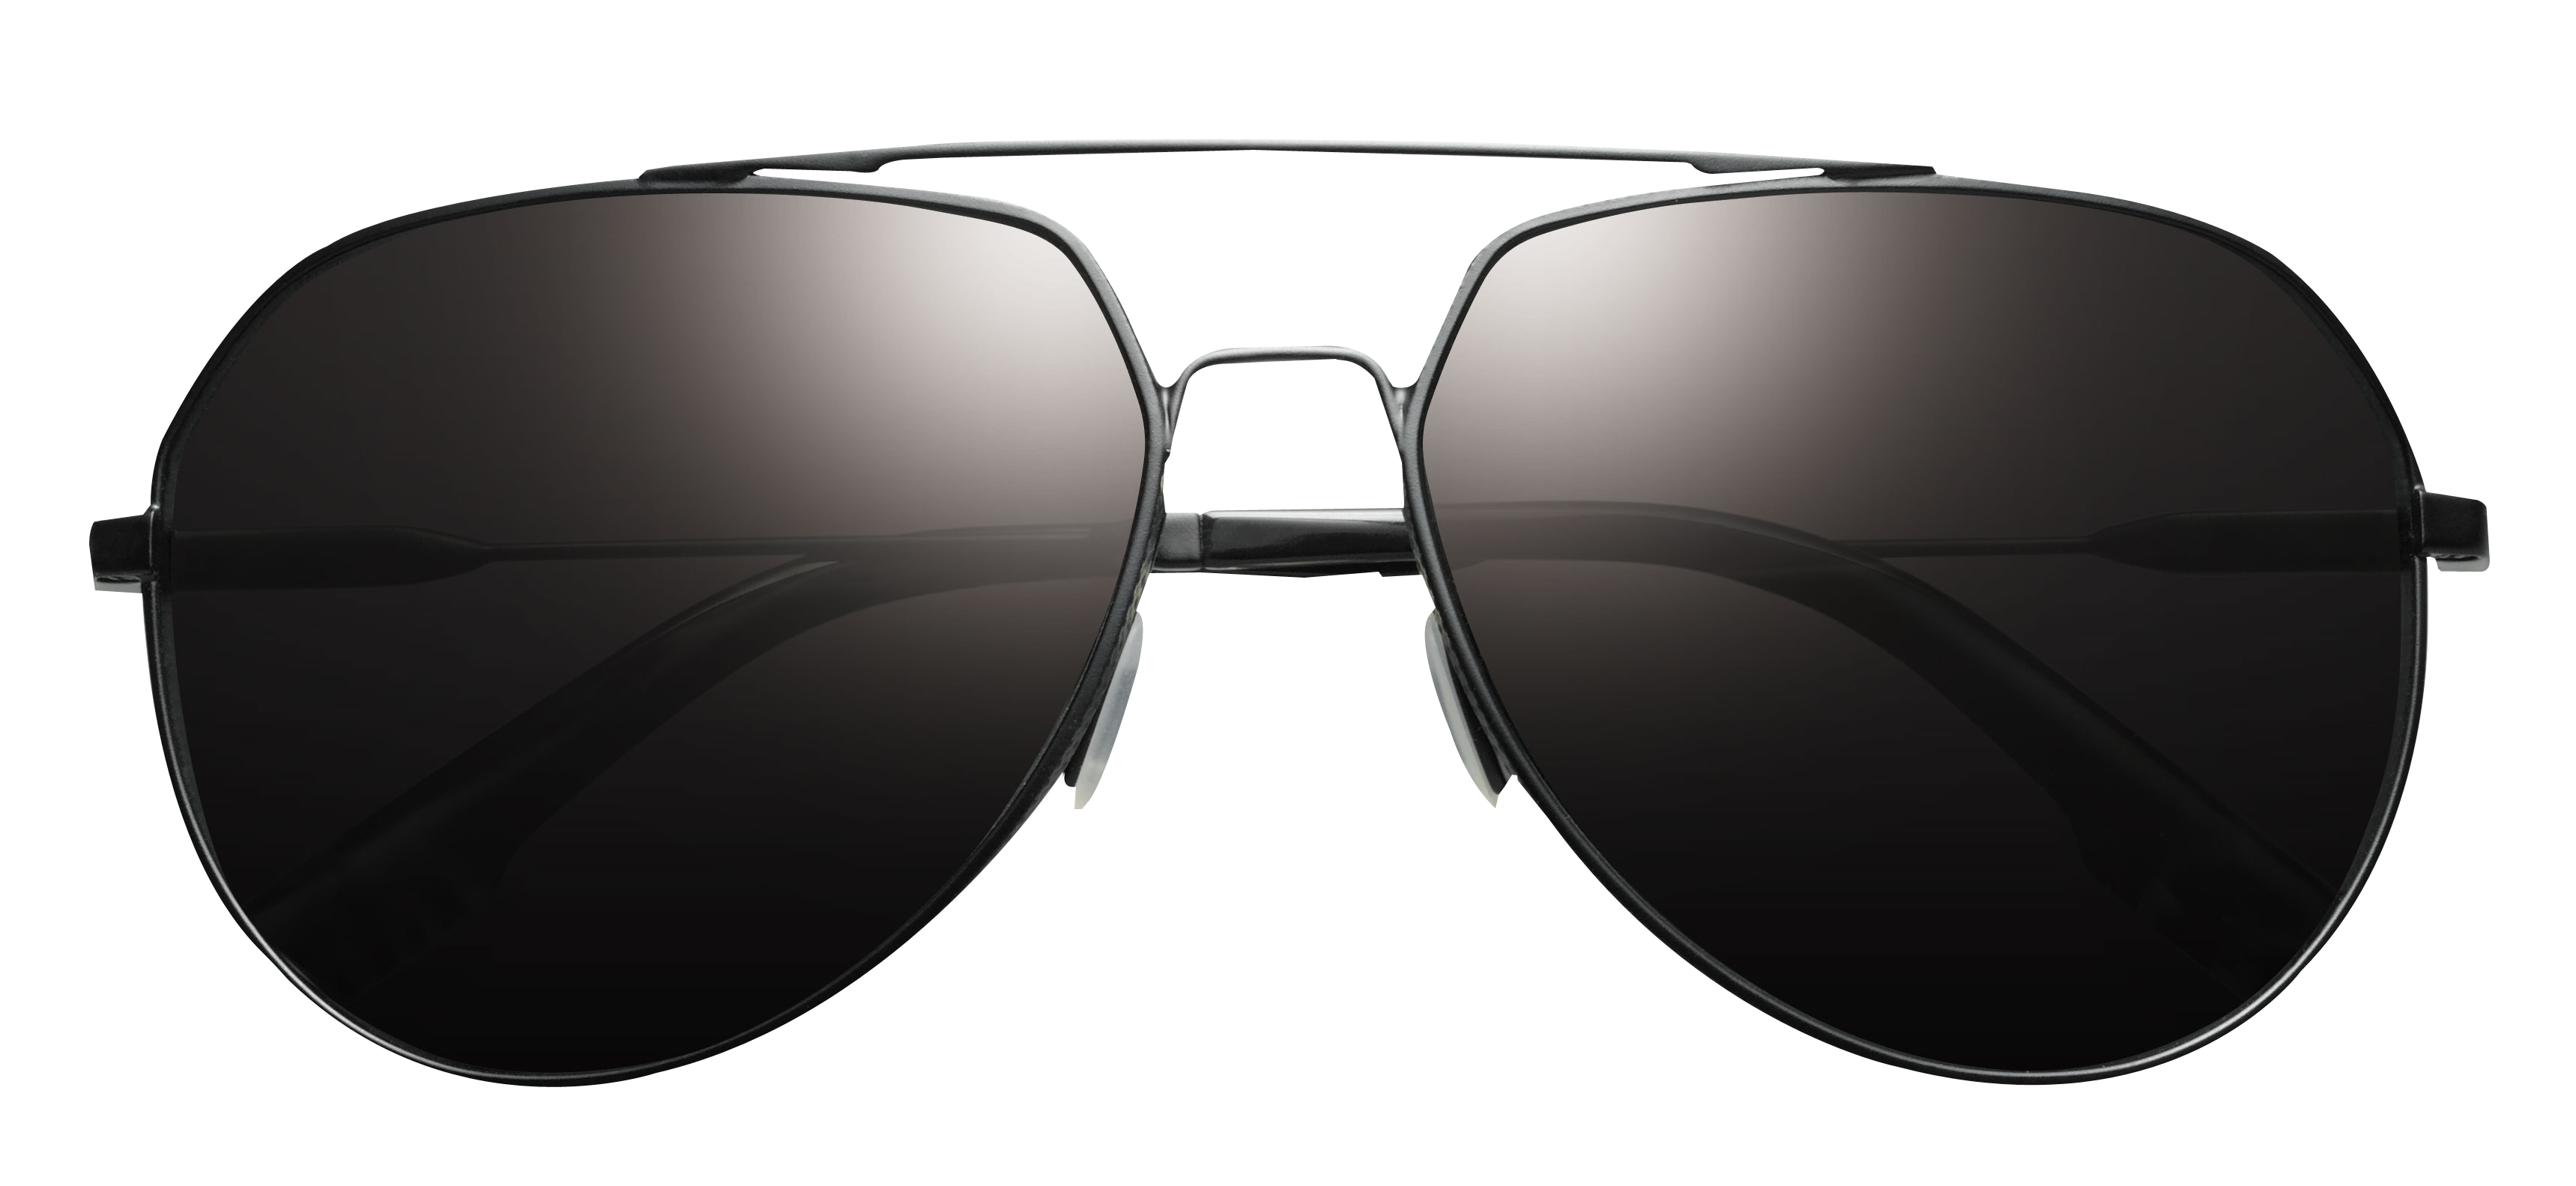 Sunglasses PNG - 22882